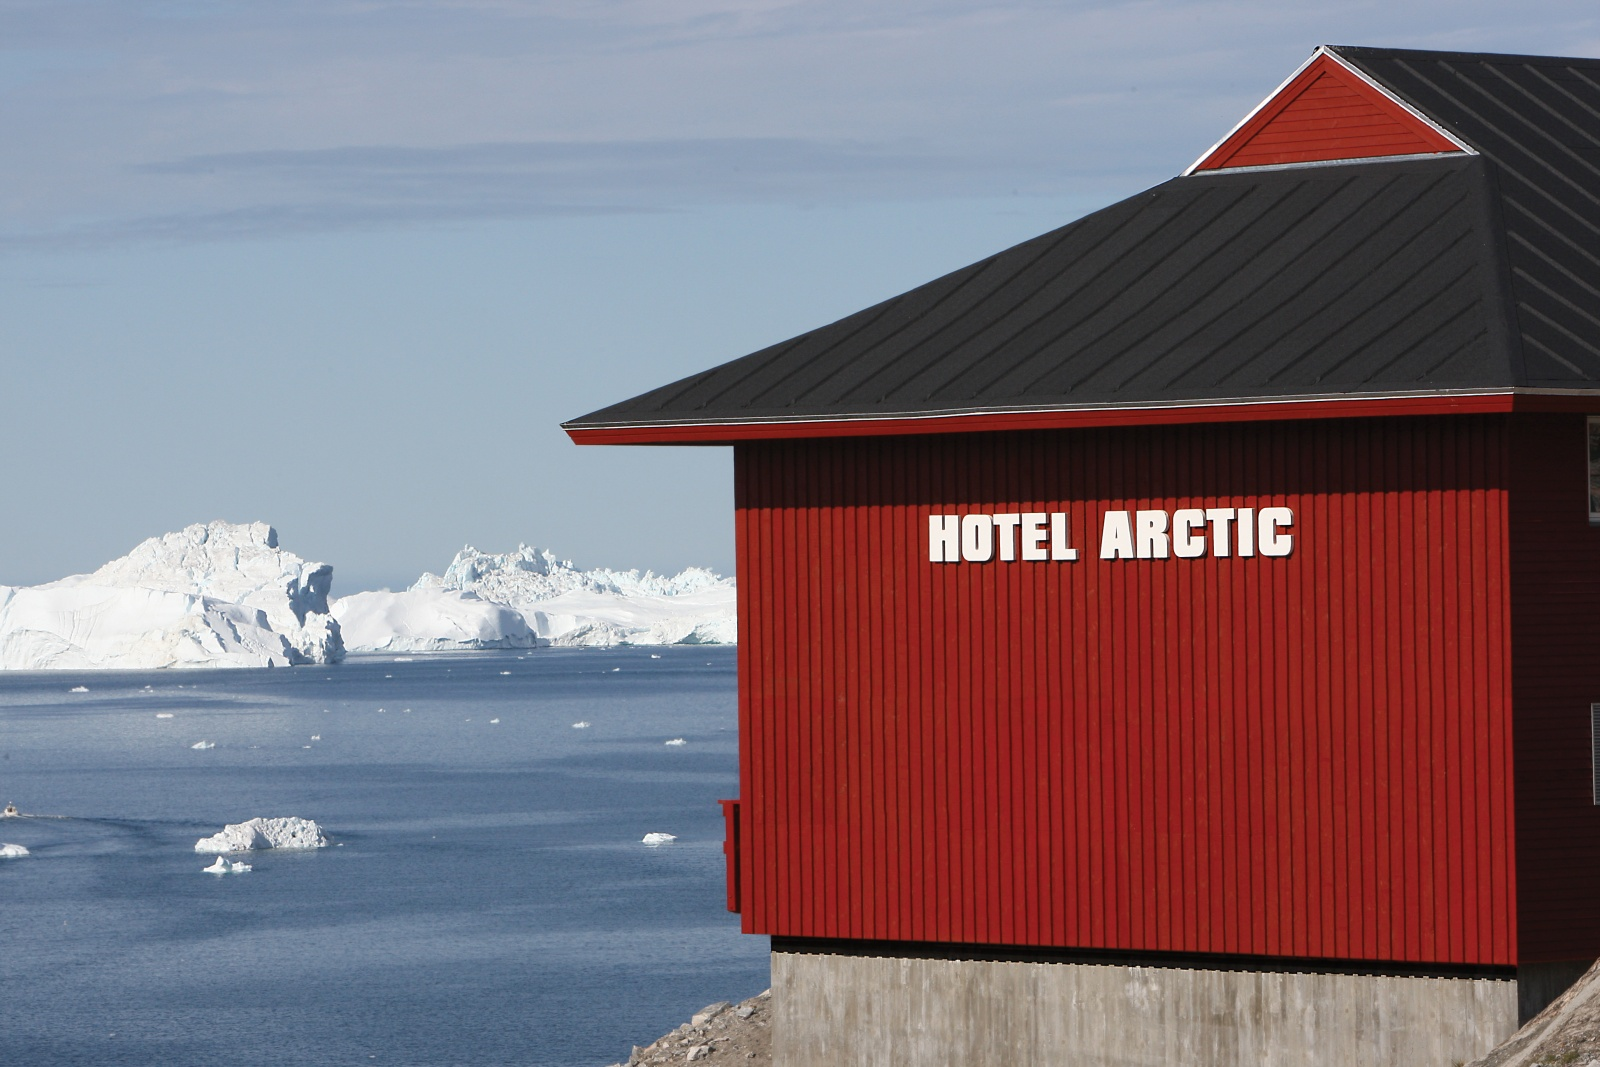 Hotel Arctic overlooking ice fjords